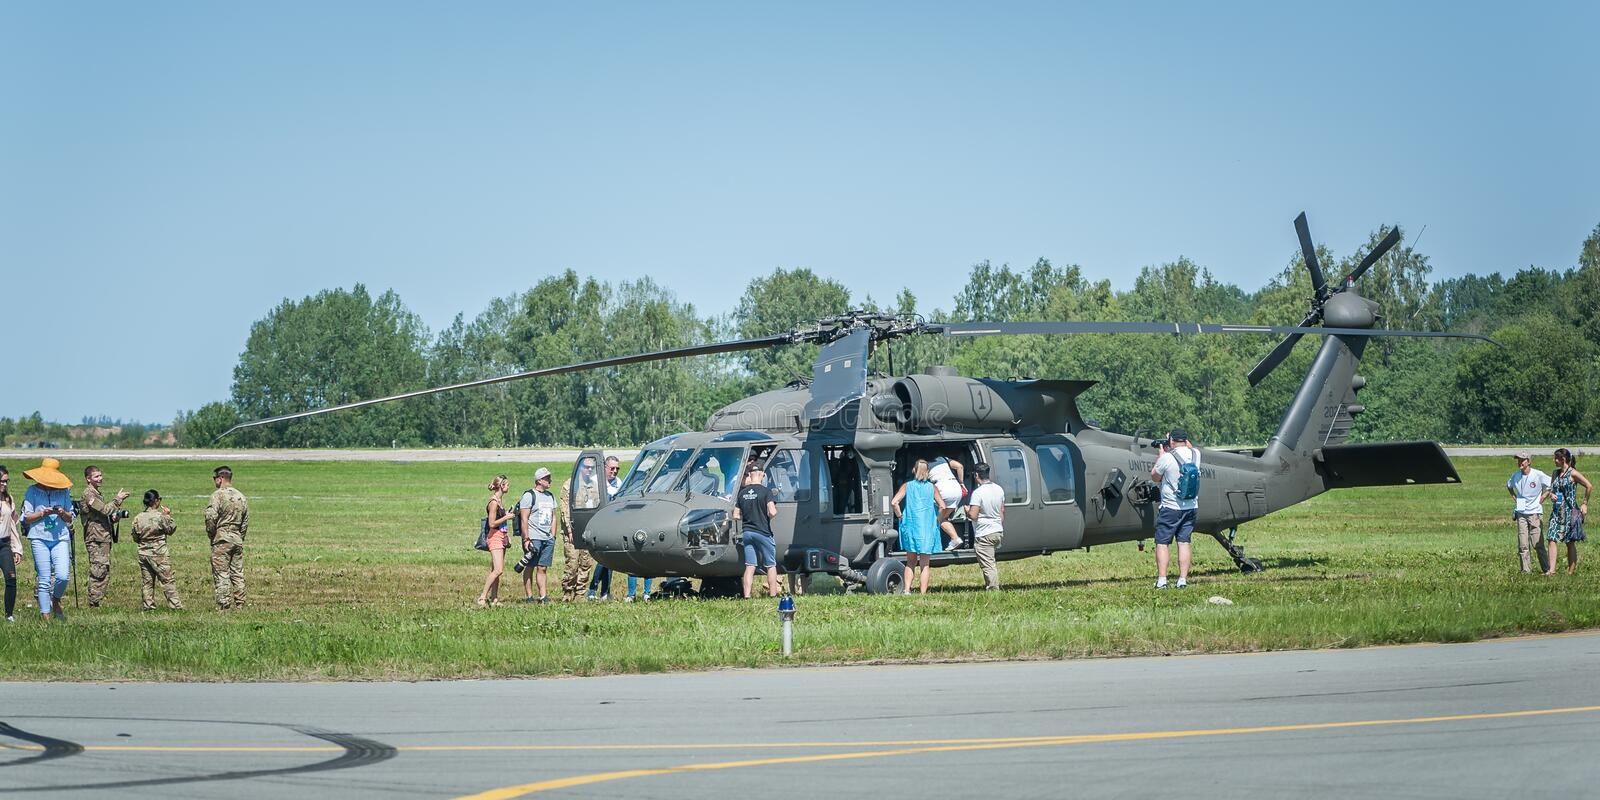 People explore the helicopter at the airshow royalty free stock photography